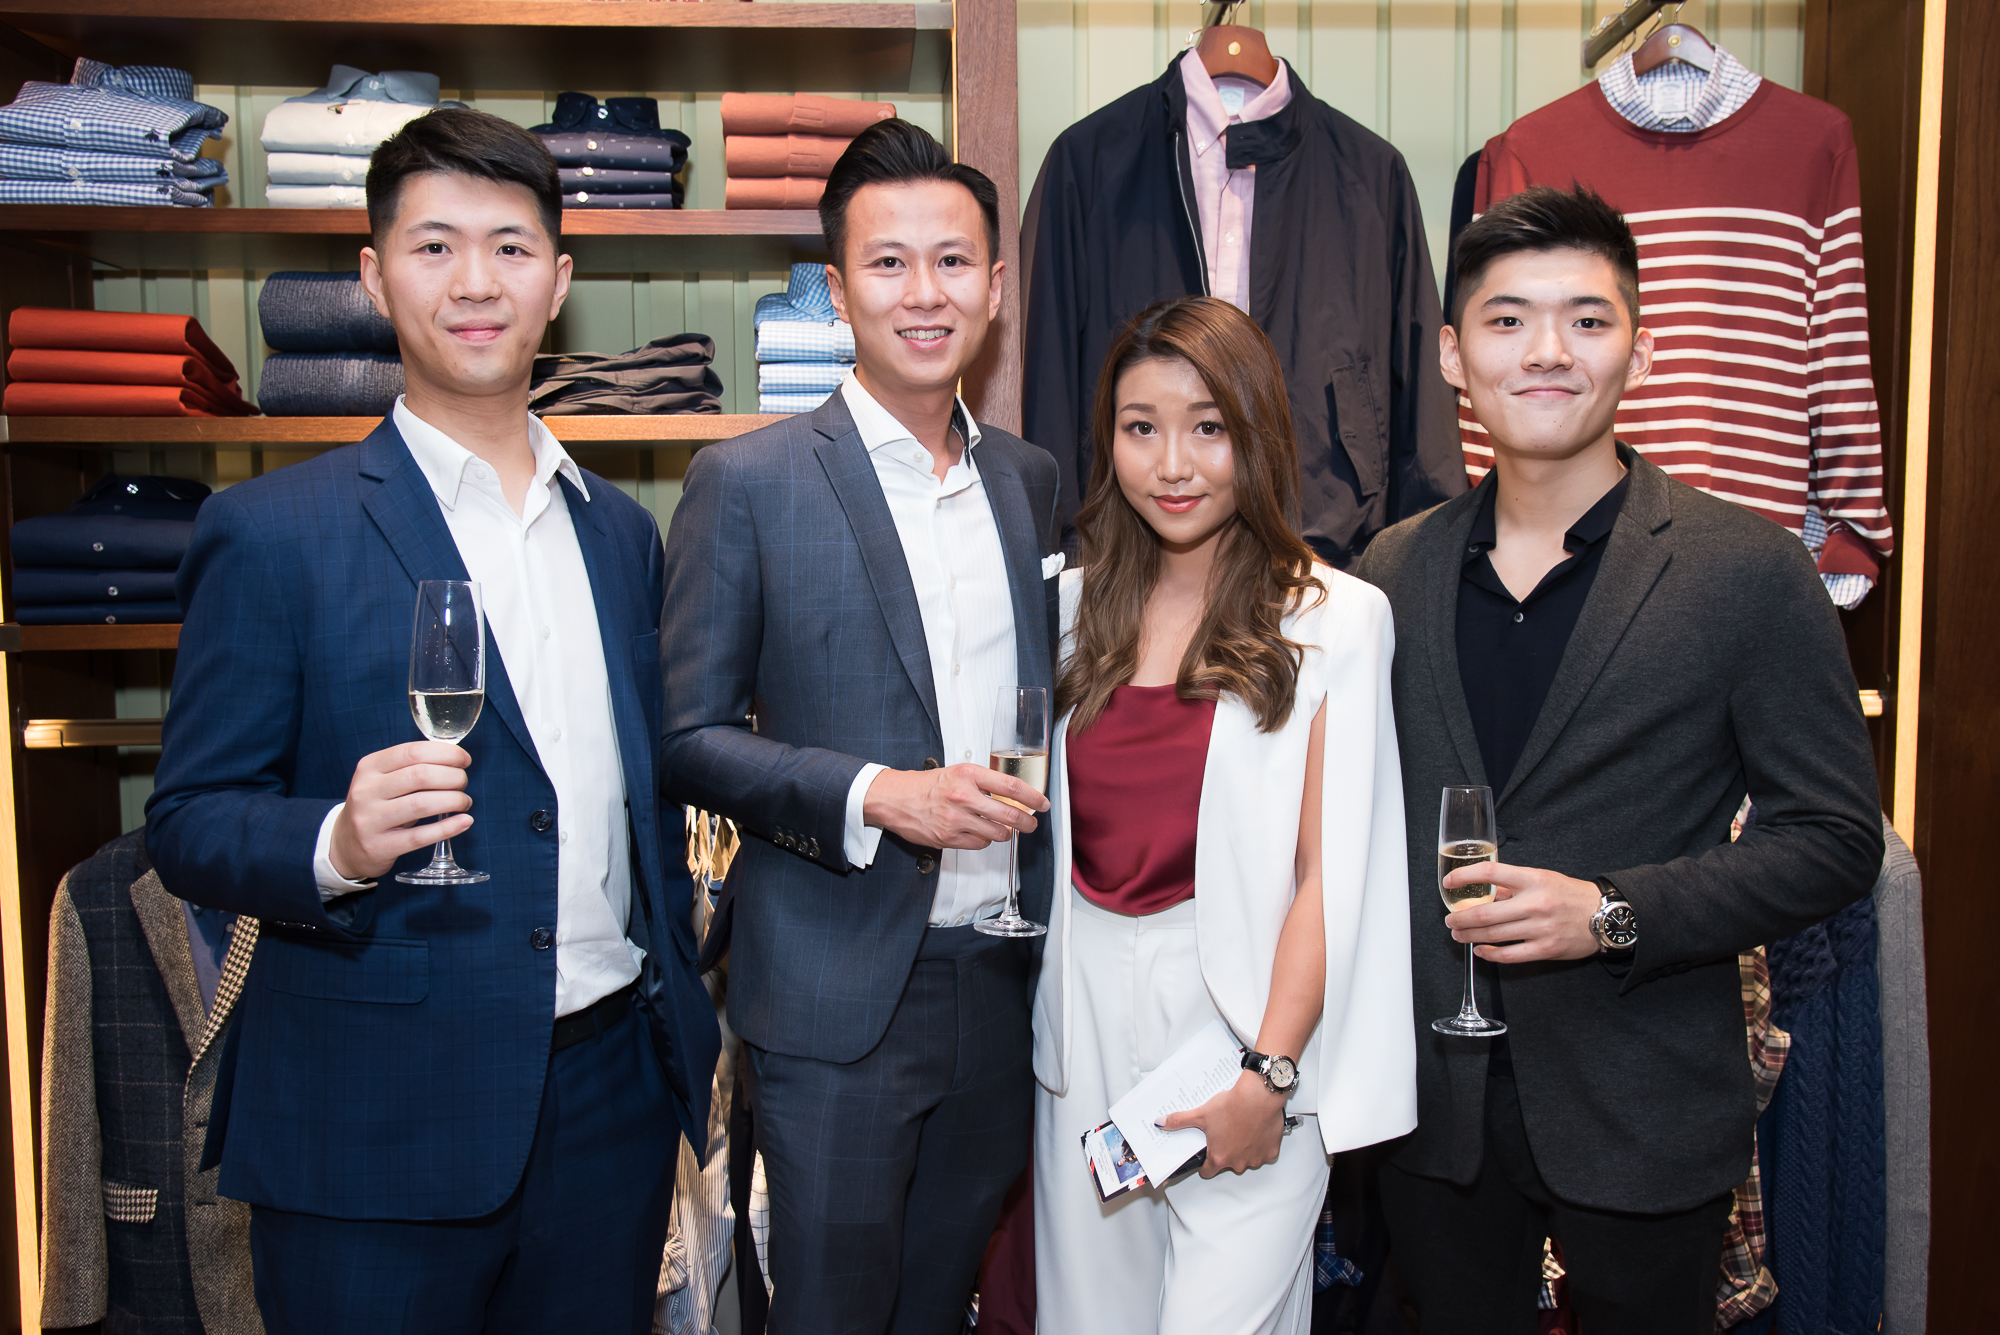 Gallery: Brooks Brothers x Lifestyle Asia VIP event